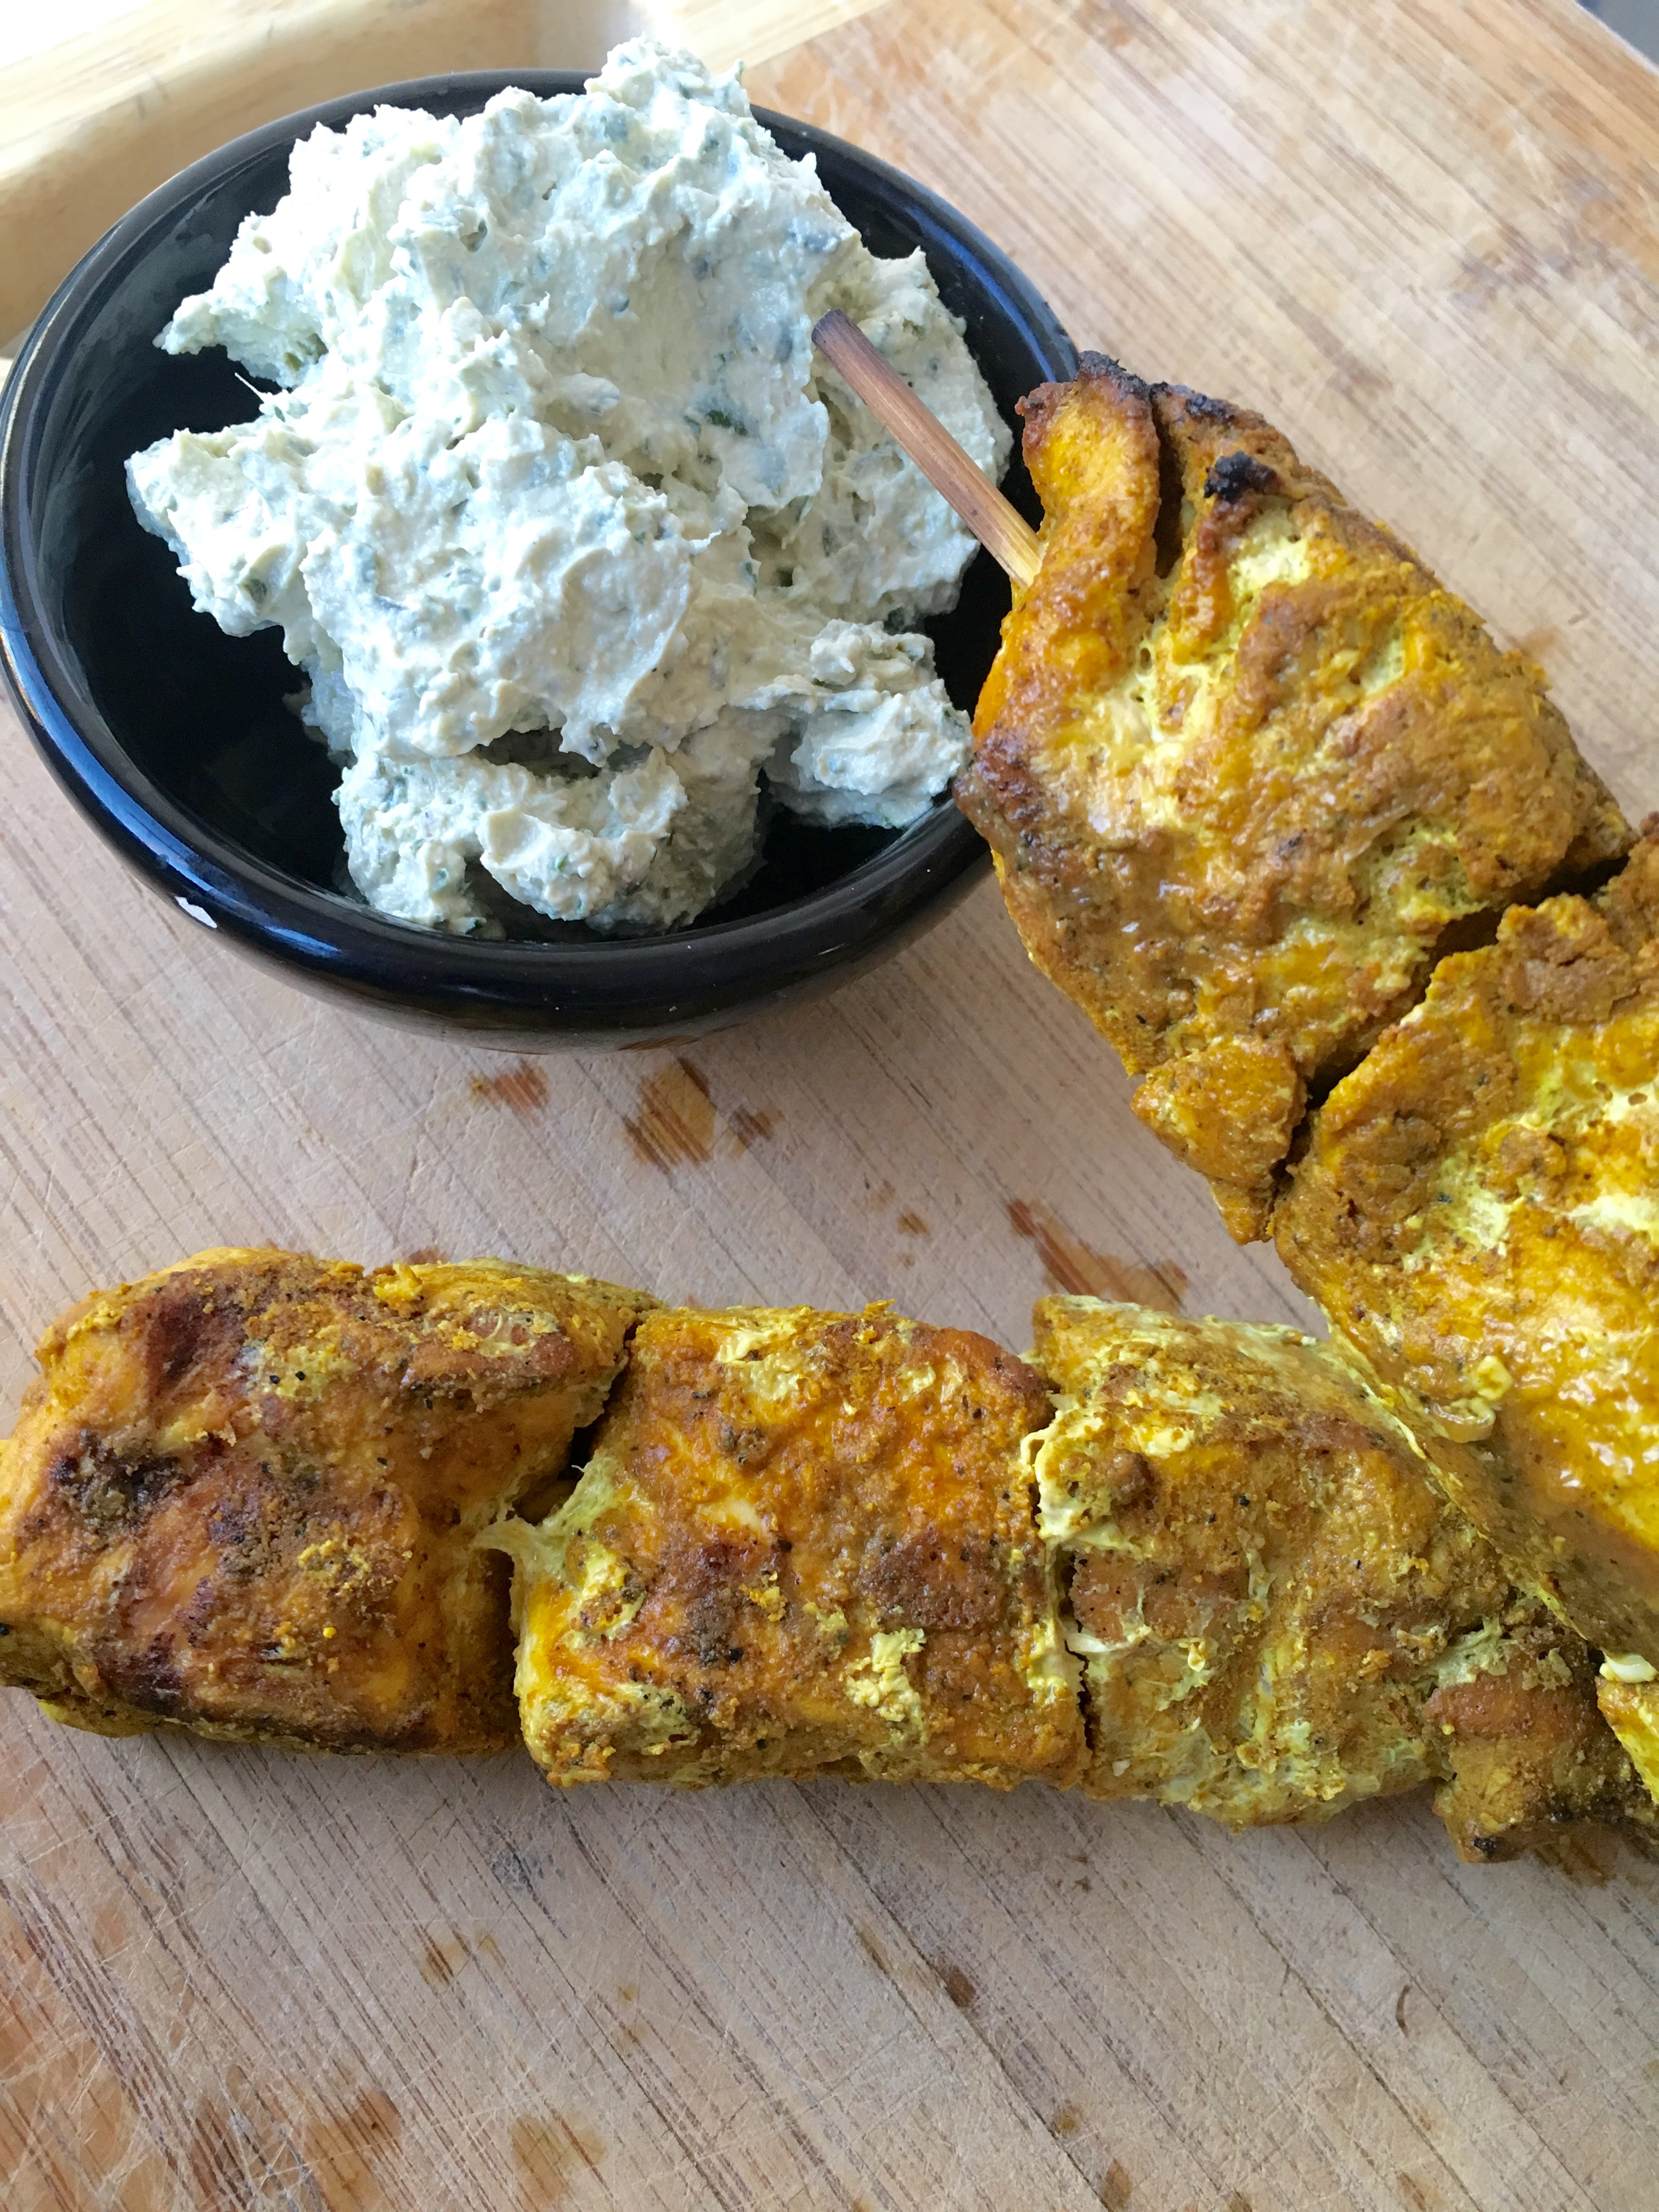 Try these flavorful Middle Eastern Spiced Chicken Skewers with Herbed Tahini Sauce on the grill this summer!